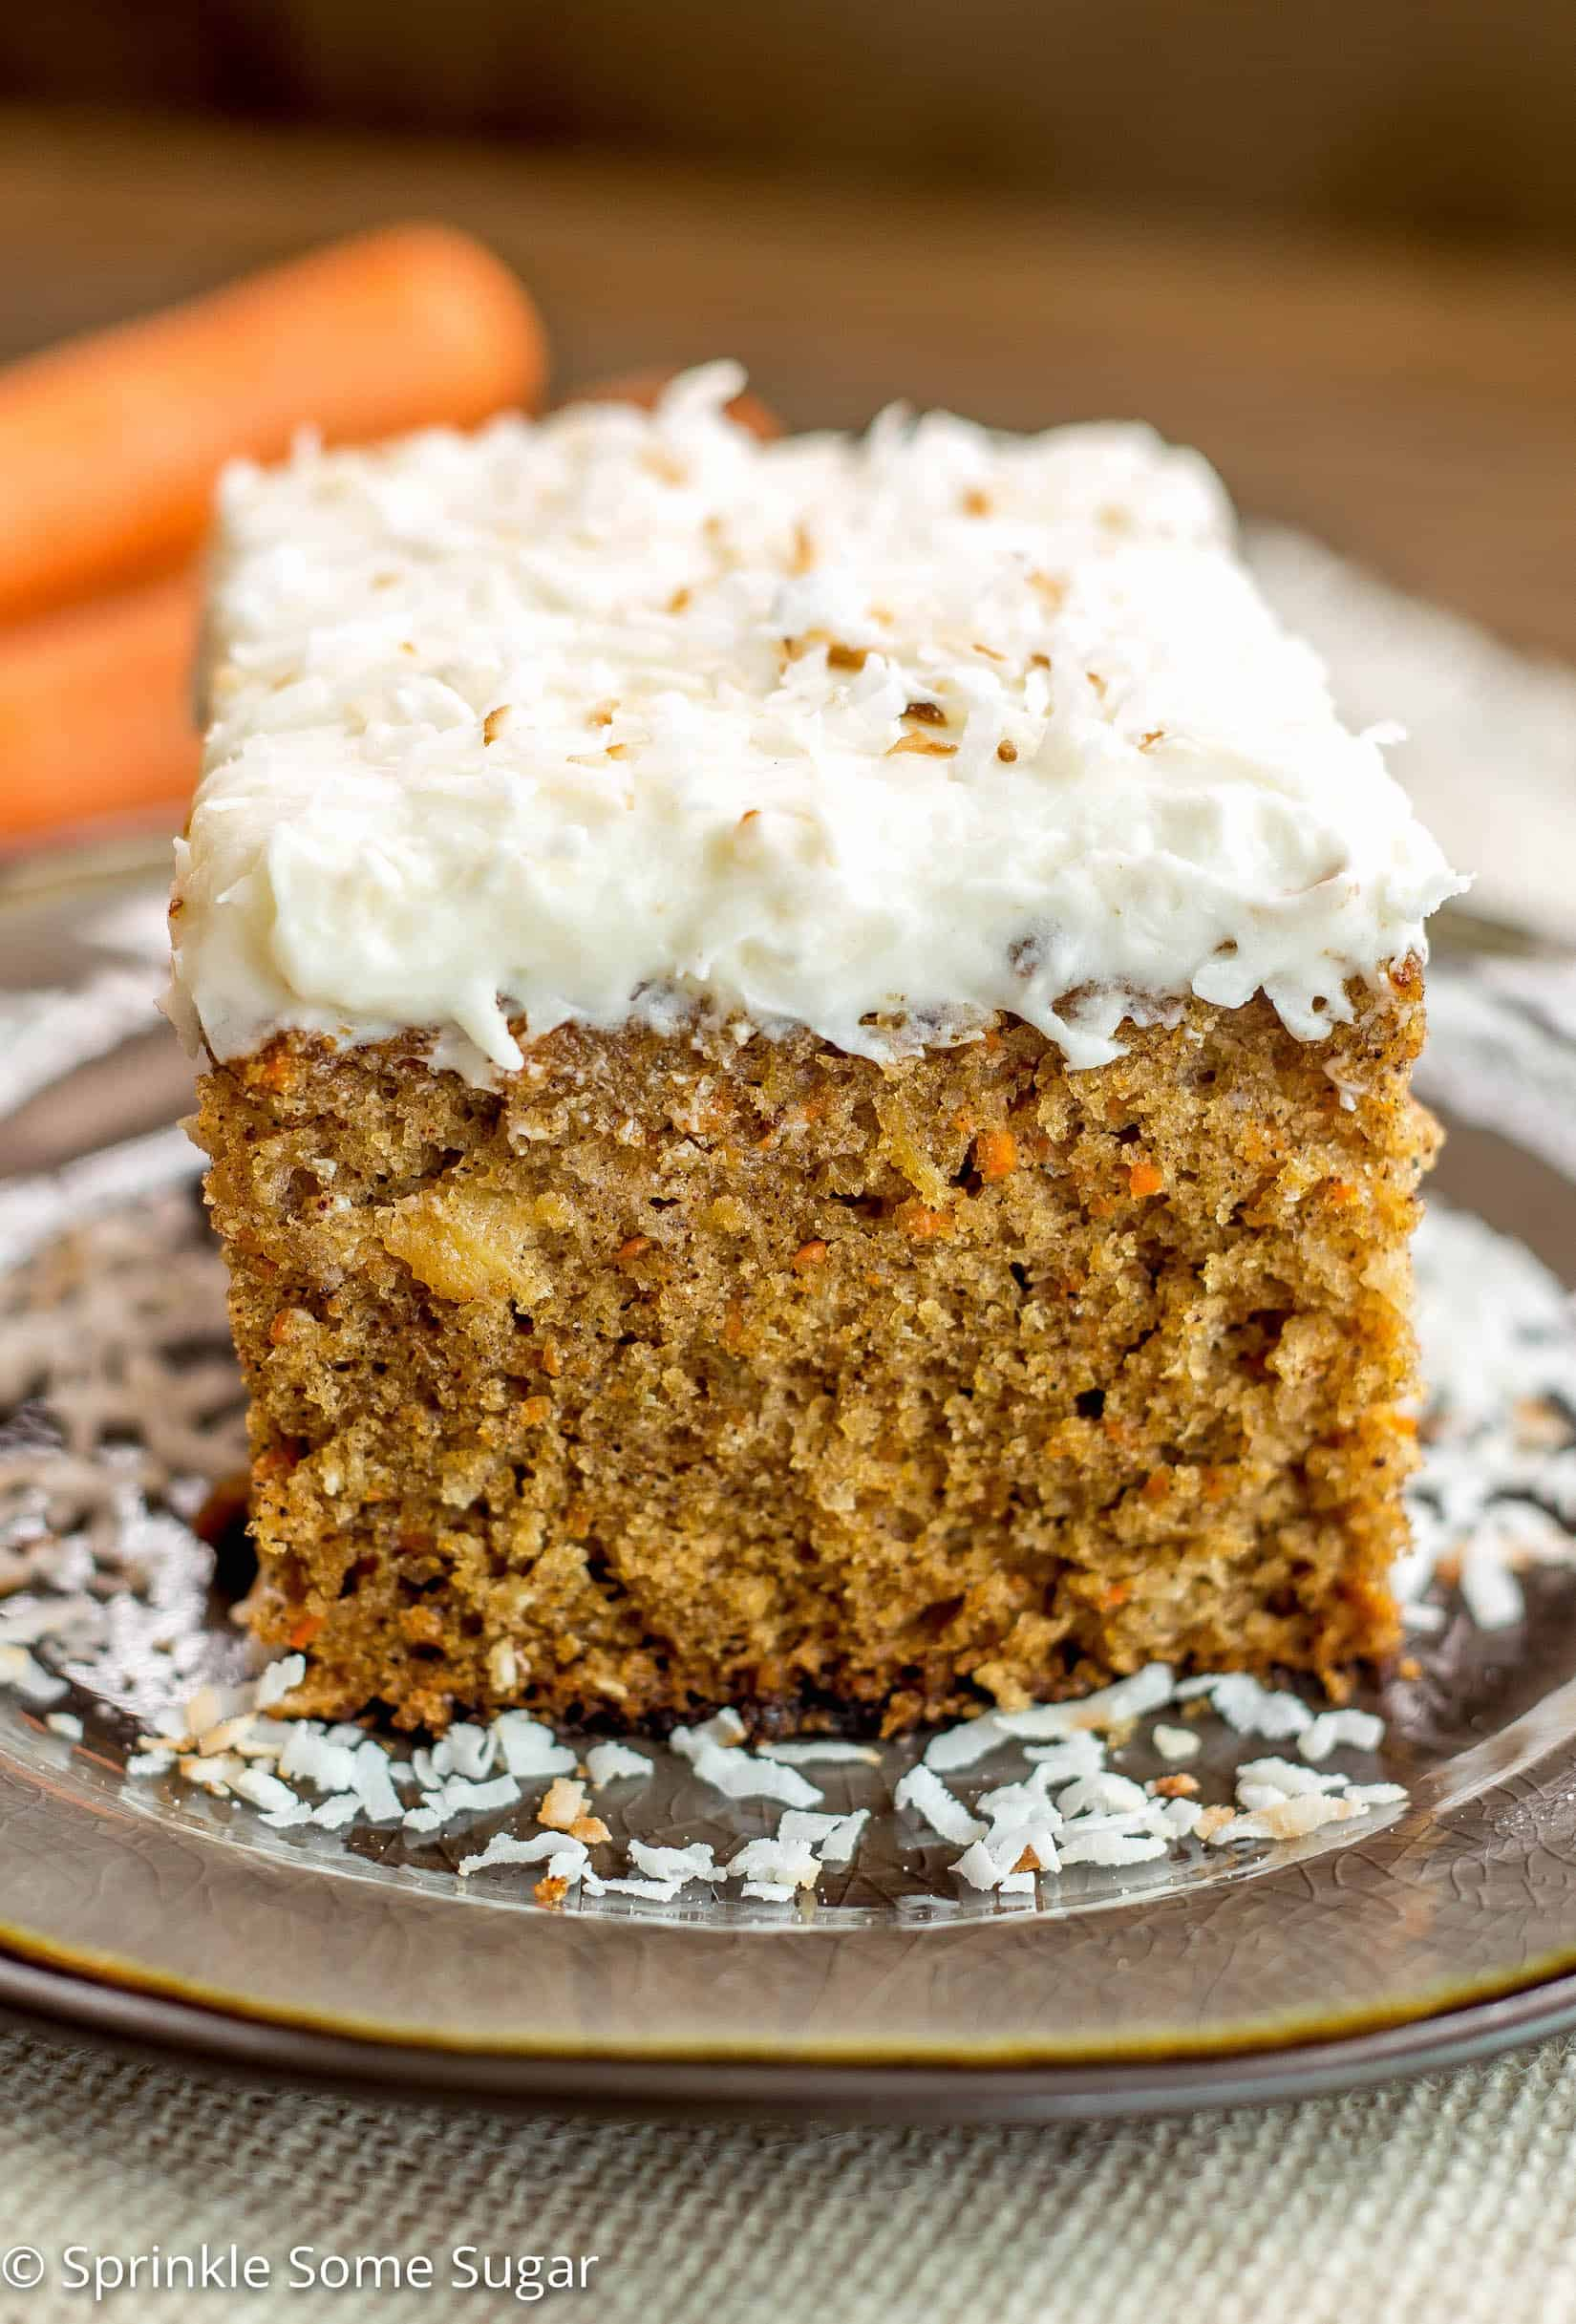 Pineapple Carrot Coconut Cake with Coconut Cream Cheese Frosting - This perfectly moist carrot cake is chock full of carrots, pineapple and coconut. Topped with hefty layer of my favorite coconut cream cheese frosting!